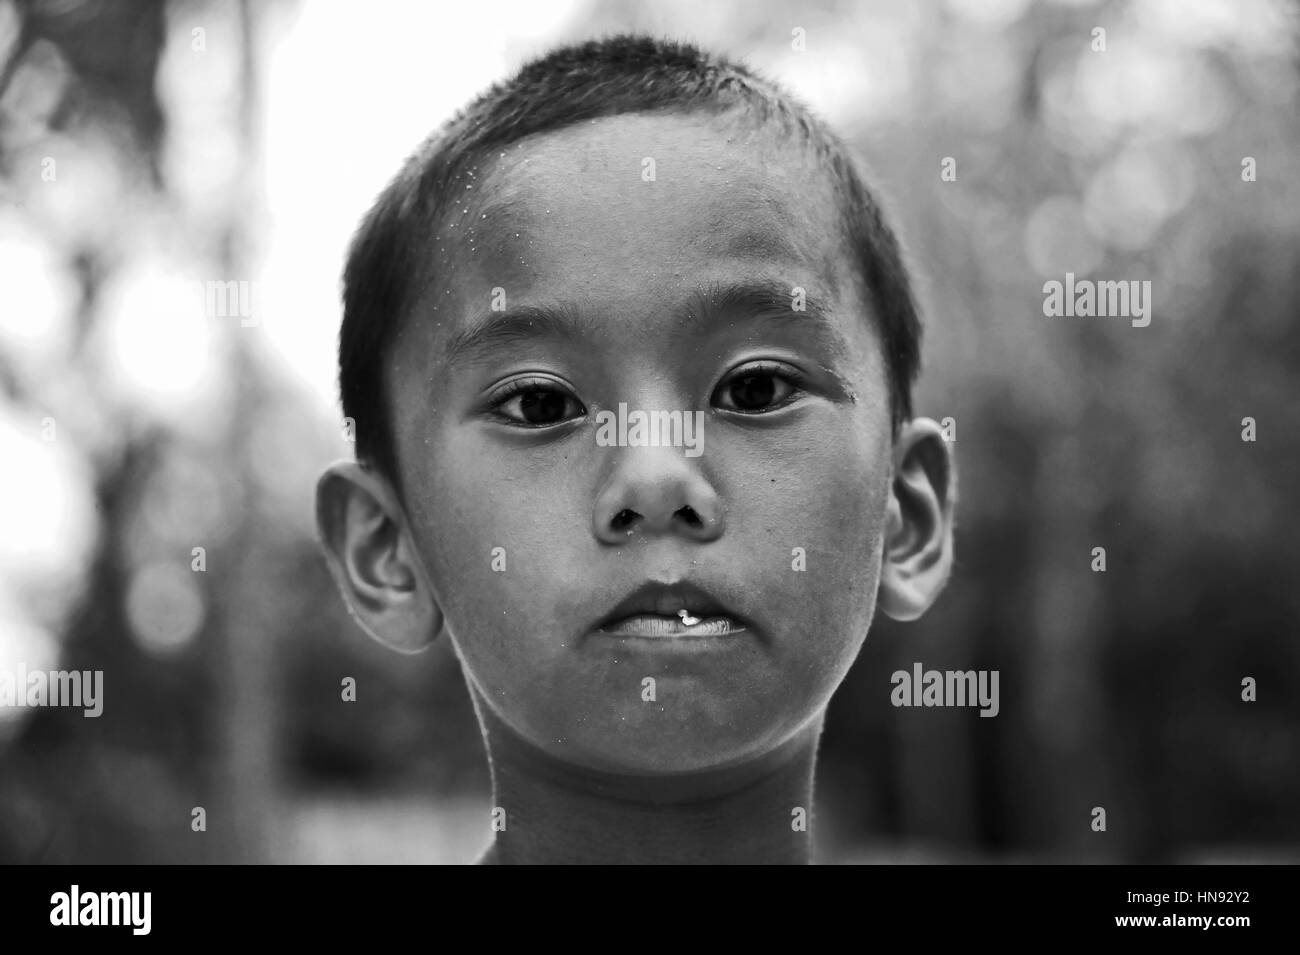 Boy is watching the Photographer while shooting - Stock Image